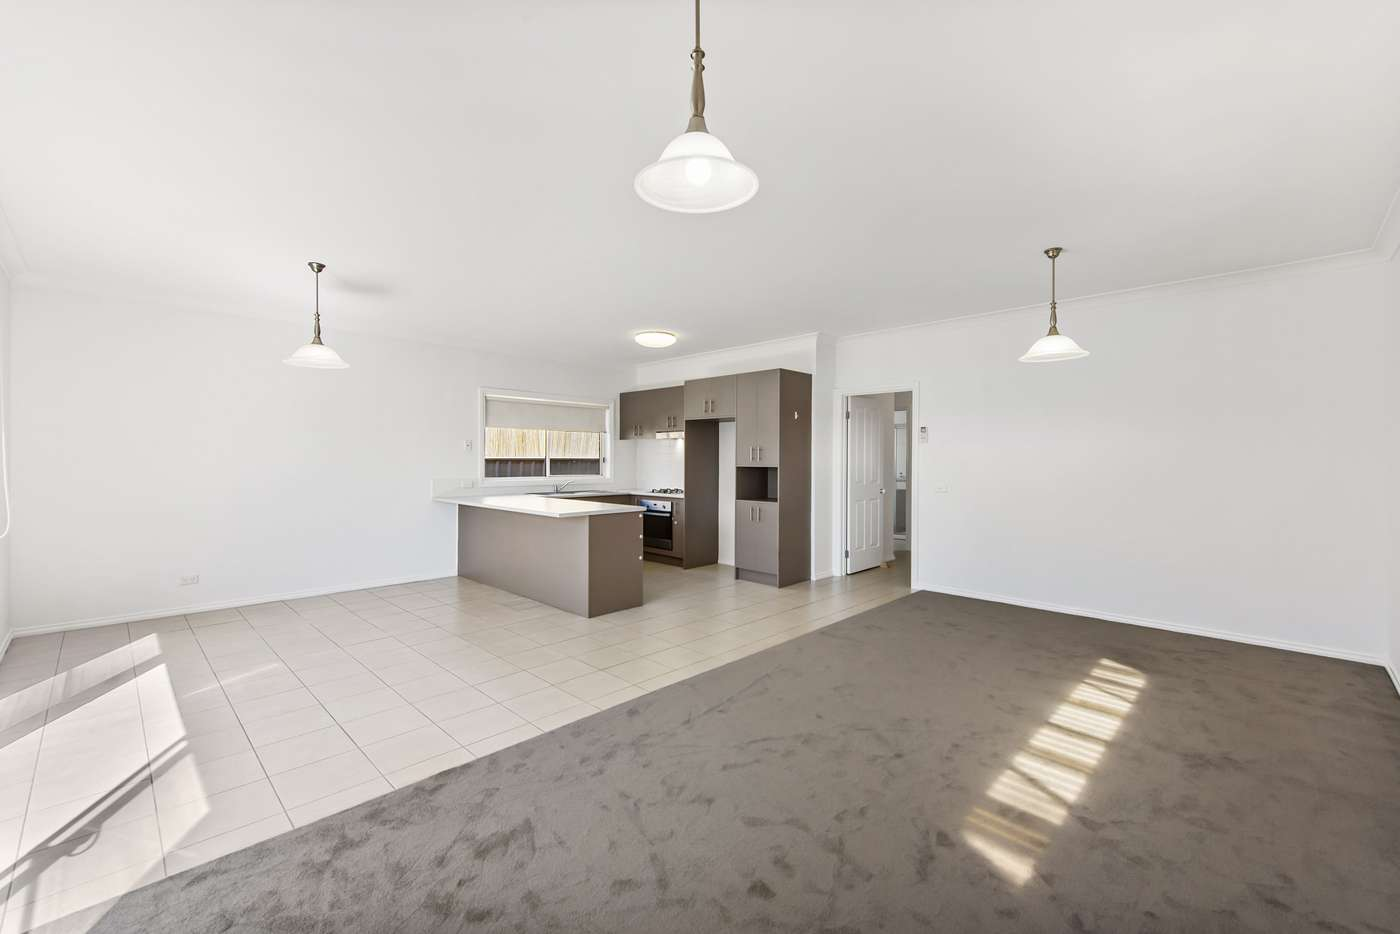 Sixth view of Homely house listing, 92 Oakview Parade, Caroline Springs VIC 3023